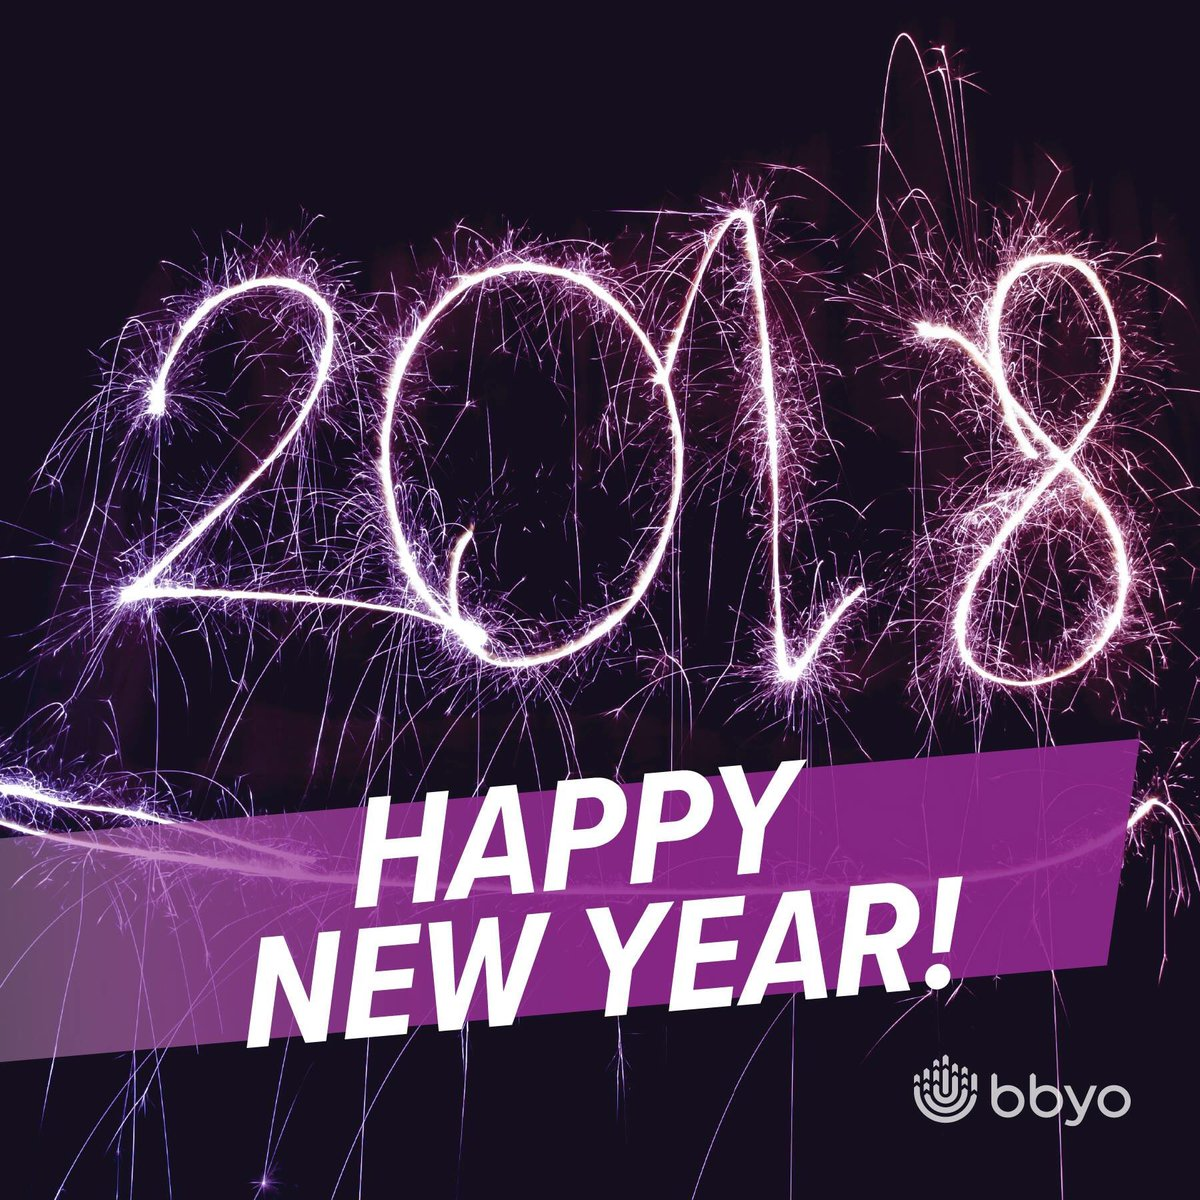 bbyo ontario on twitter we wish you a happy new year filled with good health meaningful experiences and personal growth